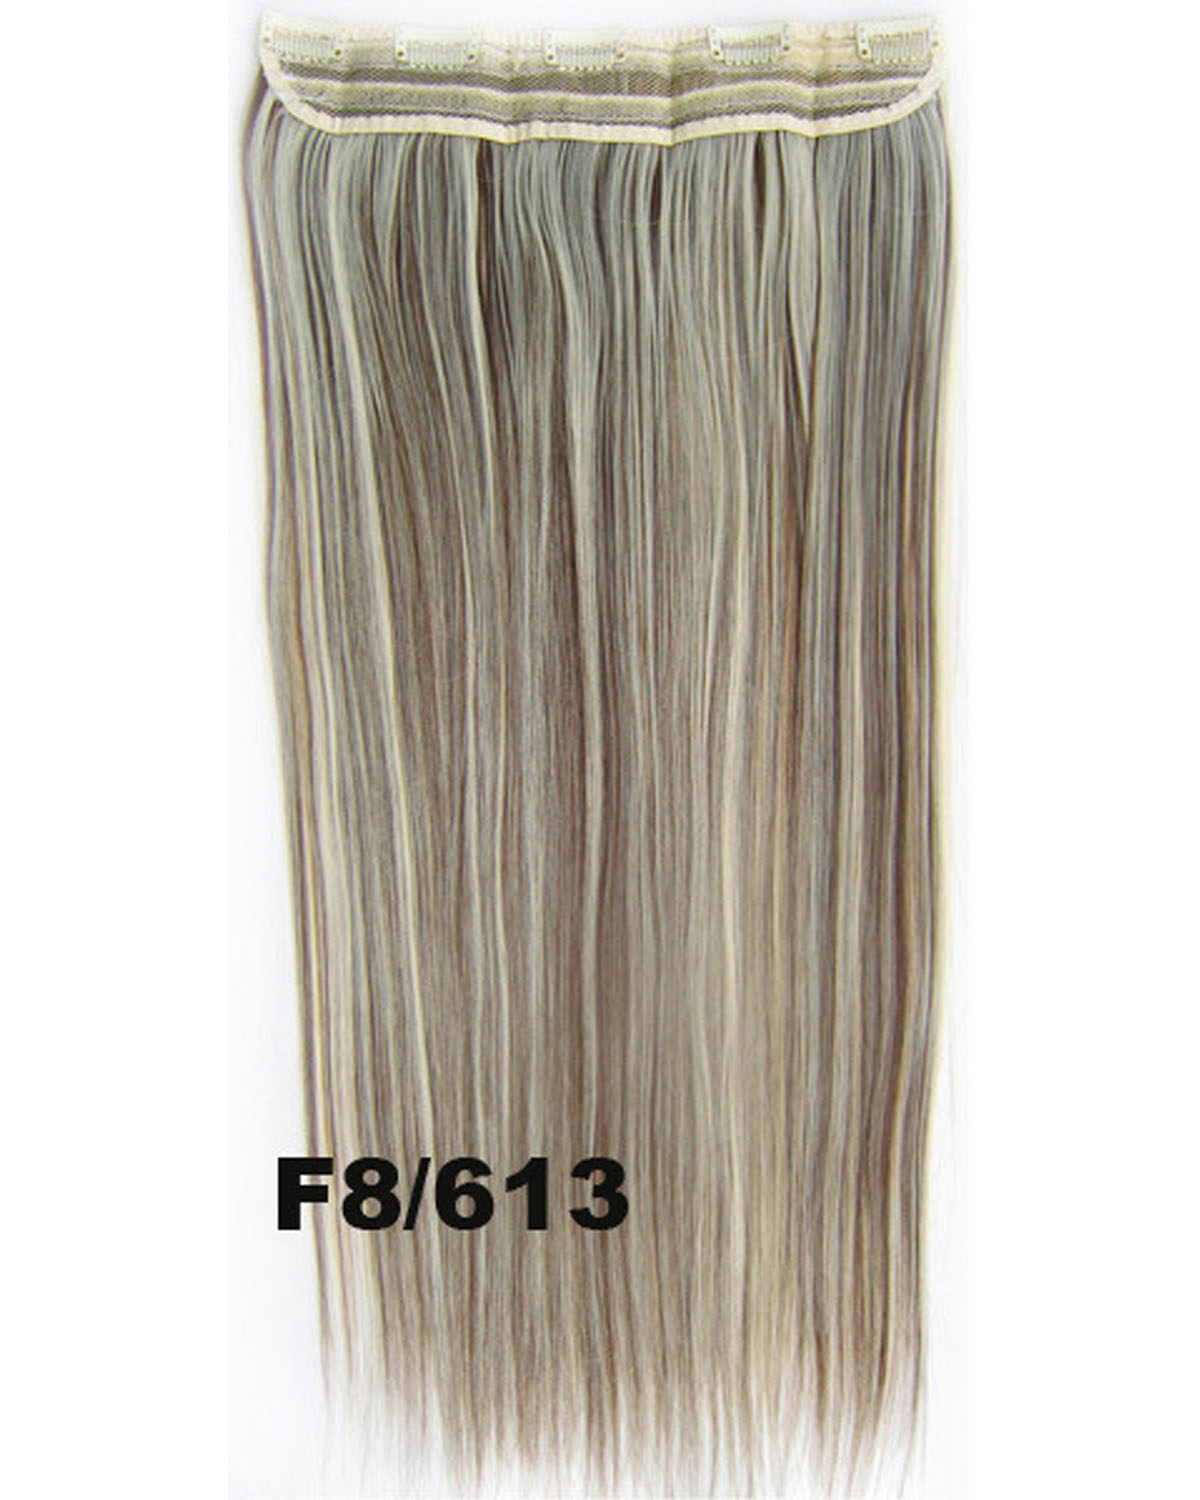 24 Inch Female High Quality Long and Straight Hot-Sale One Piece 5 Clips Clip in Synthetic Hair ExtensionF8/613